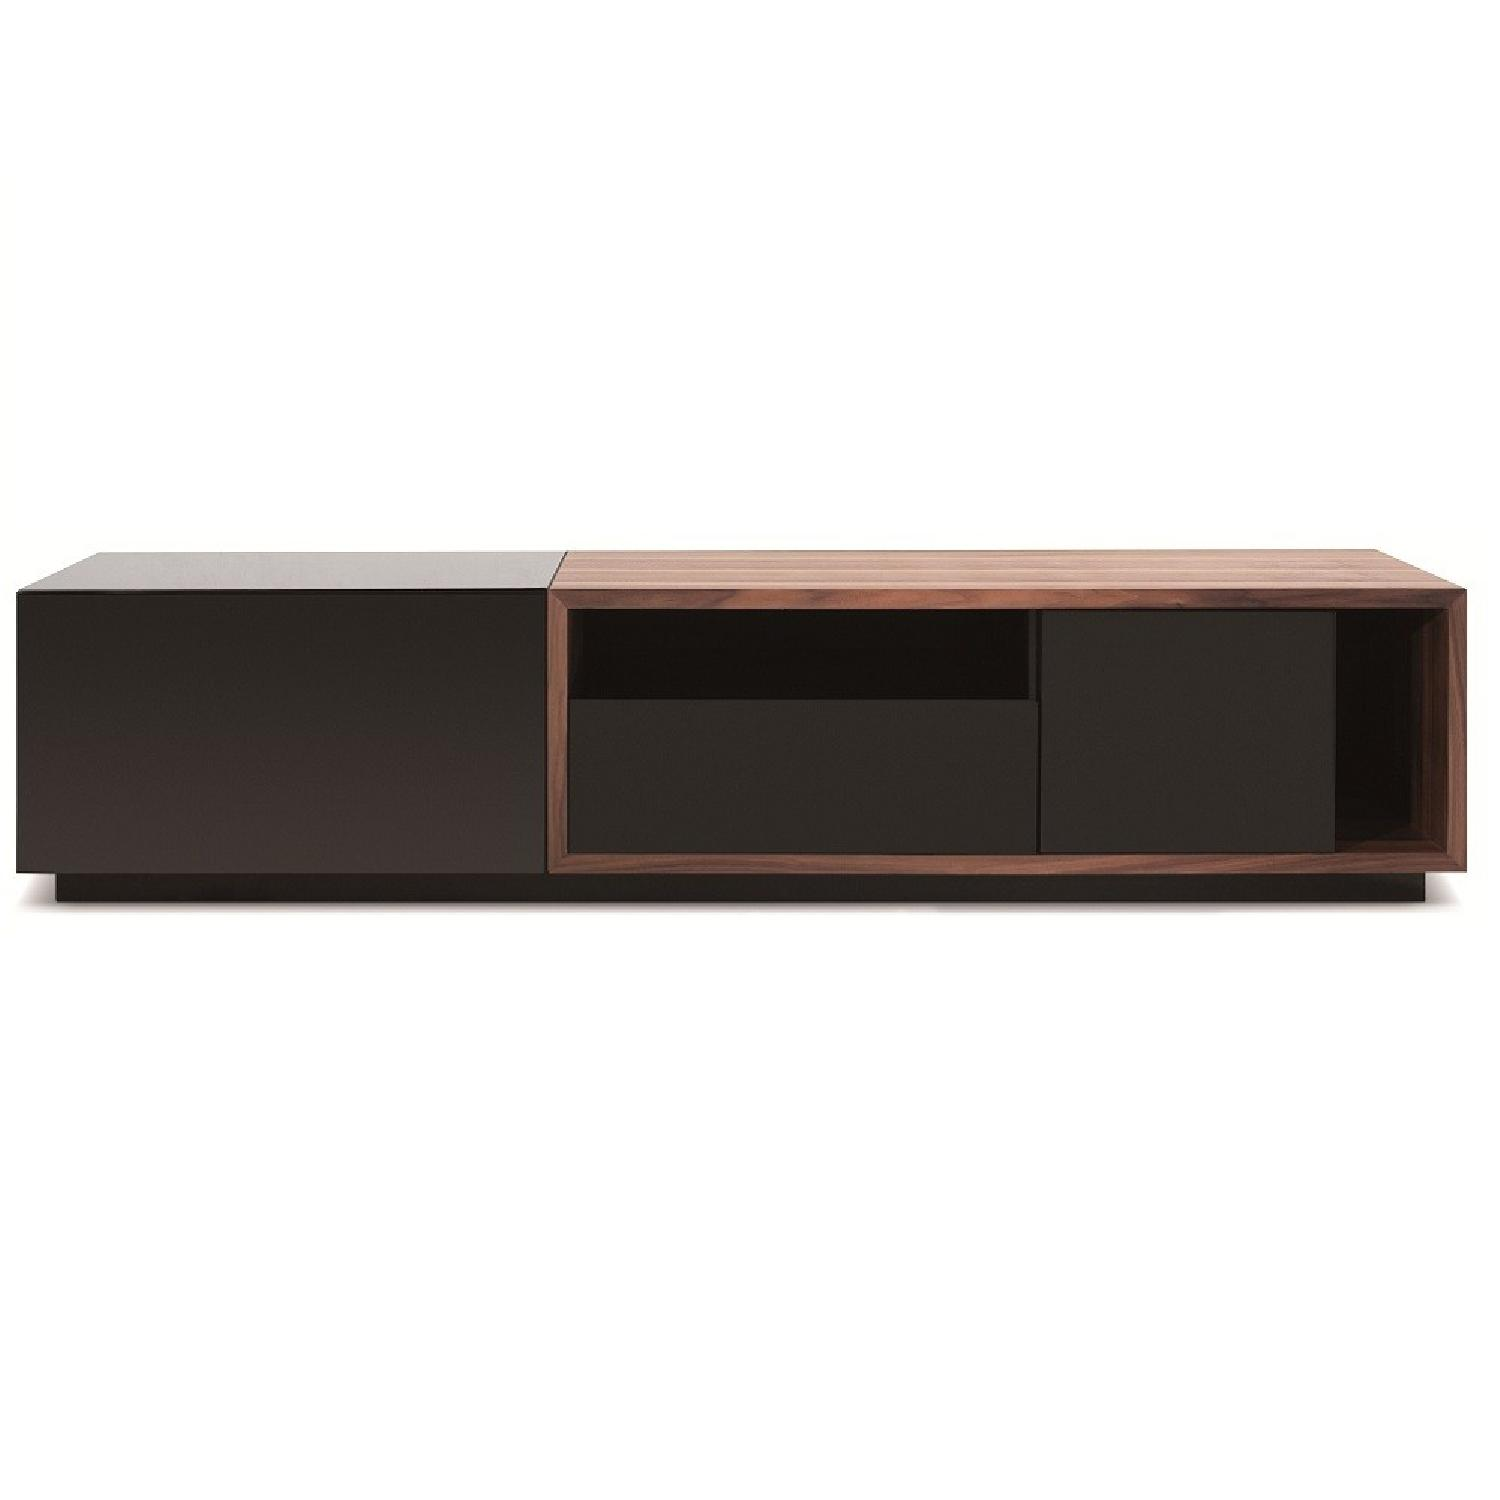 TV Stand w/ Walnut & Black Gloss Finish & Drawers - image-3